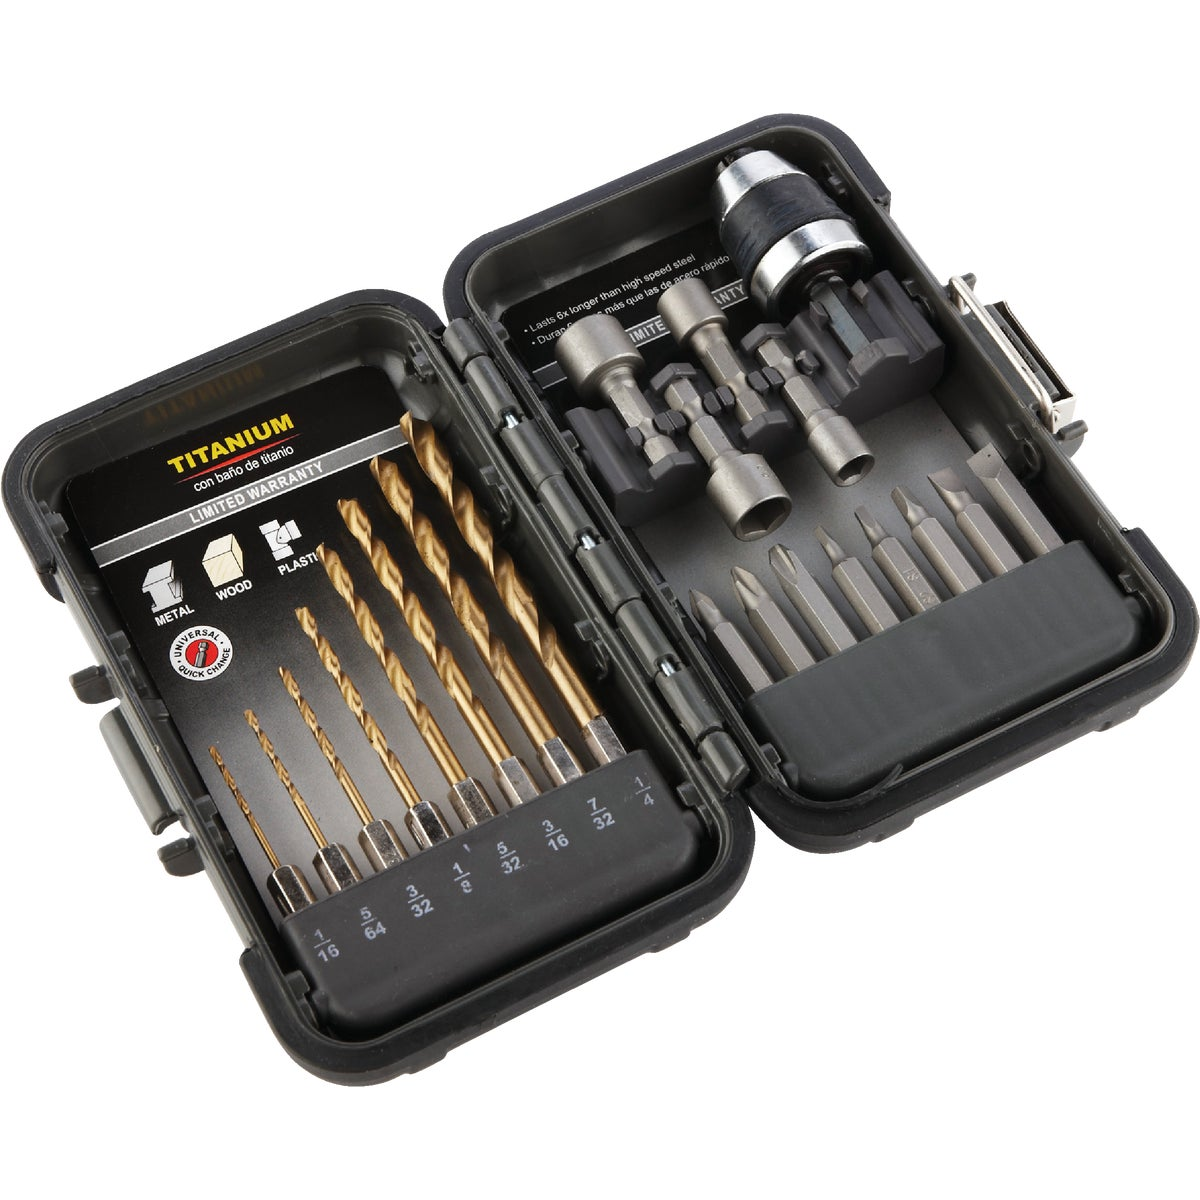 21PC DRILL/DRIVE SET